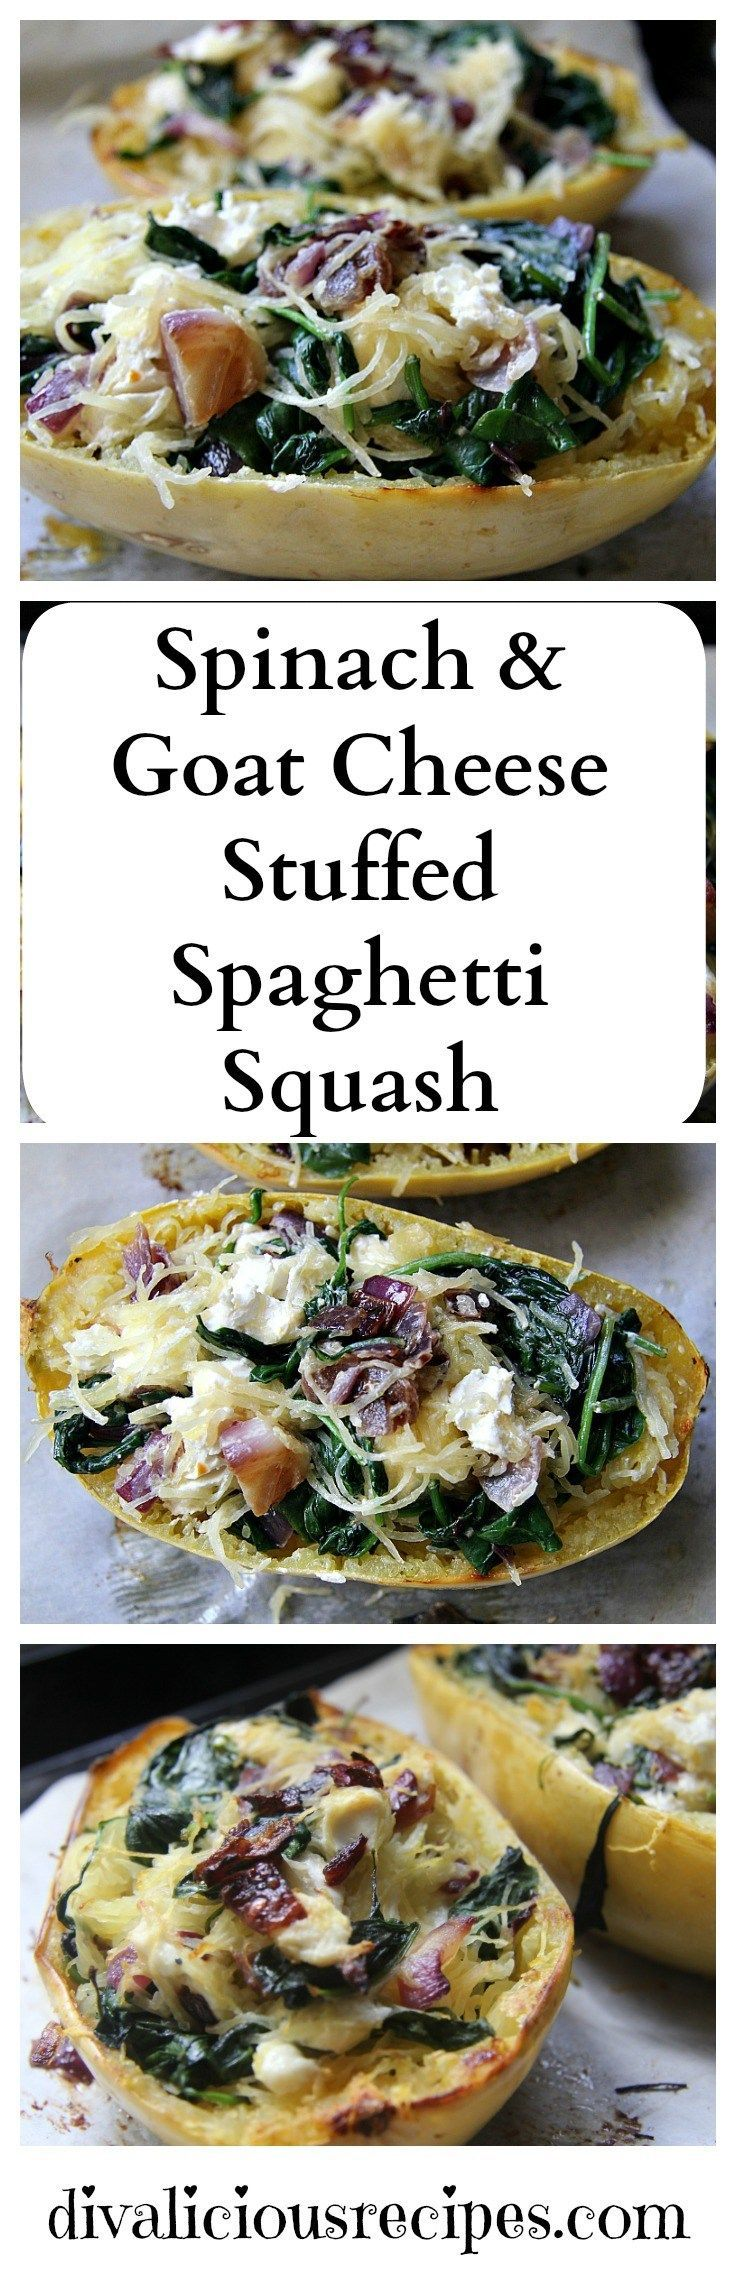 This stuffed spaghetti squash recipe is flavoured with spinach and goats cheese to make a hearty vegetarian dish. All the colours of autumn on your plate. Find the recipe here: http://divaliciousrecipes.com/2016/10/23/spinach-goat-cheese-stuffed-spaghetti-squash/